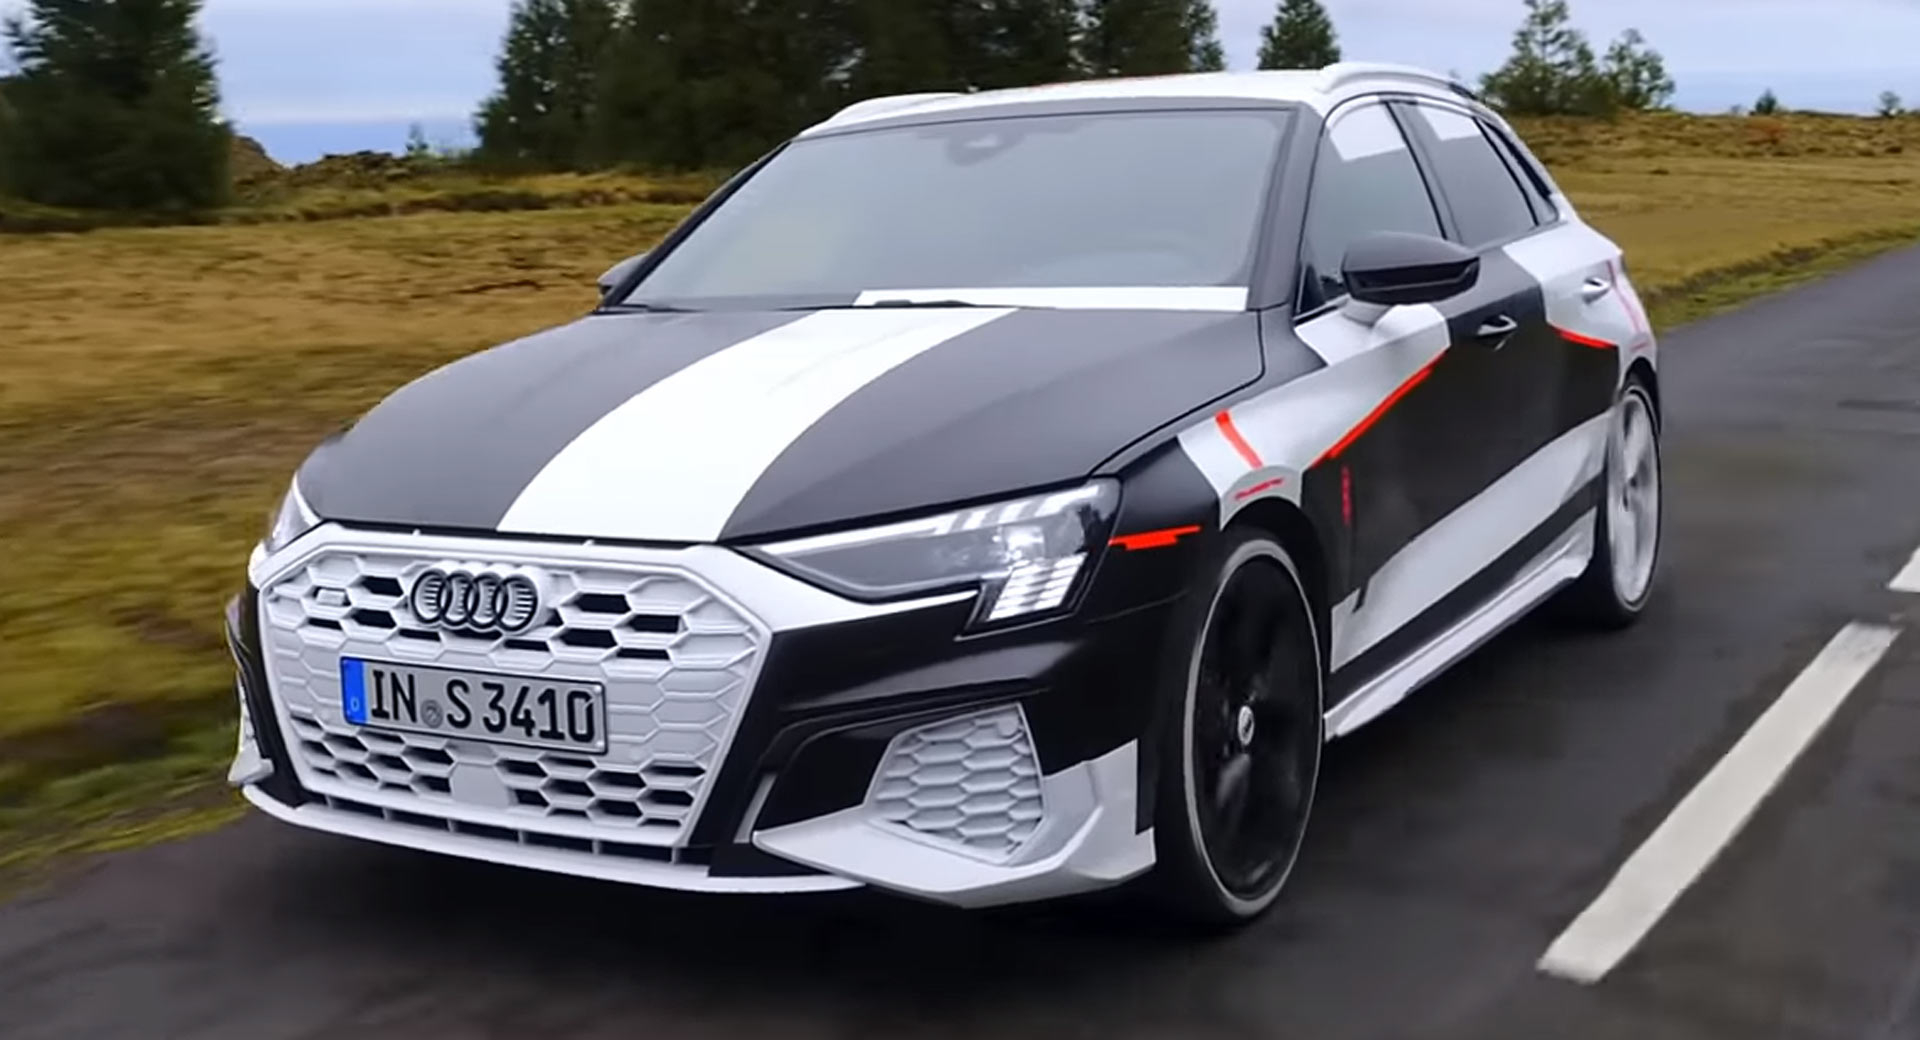 2020 Audi S3 Prototype Review Finds It A Better All